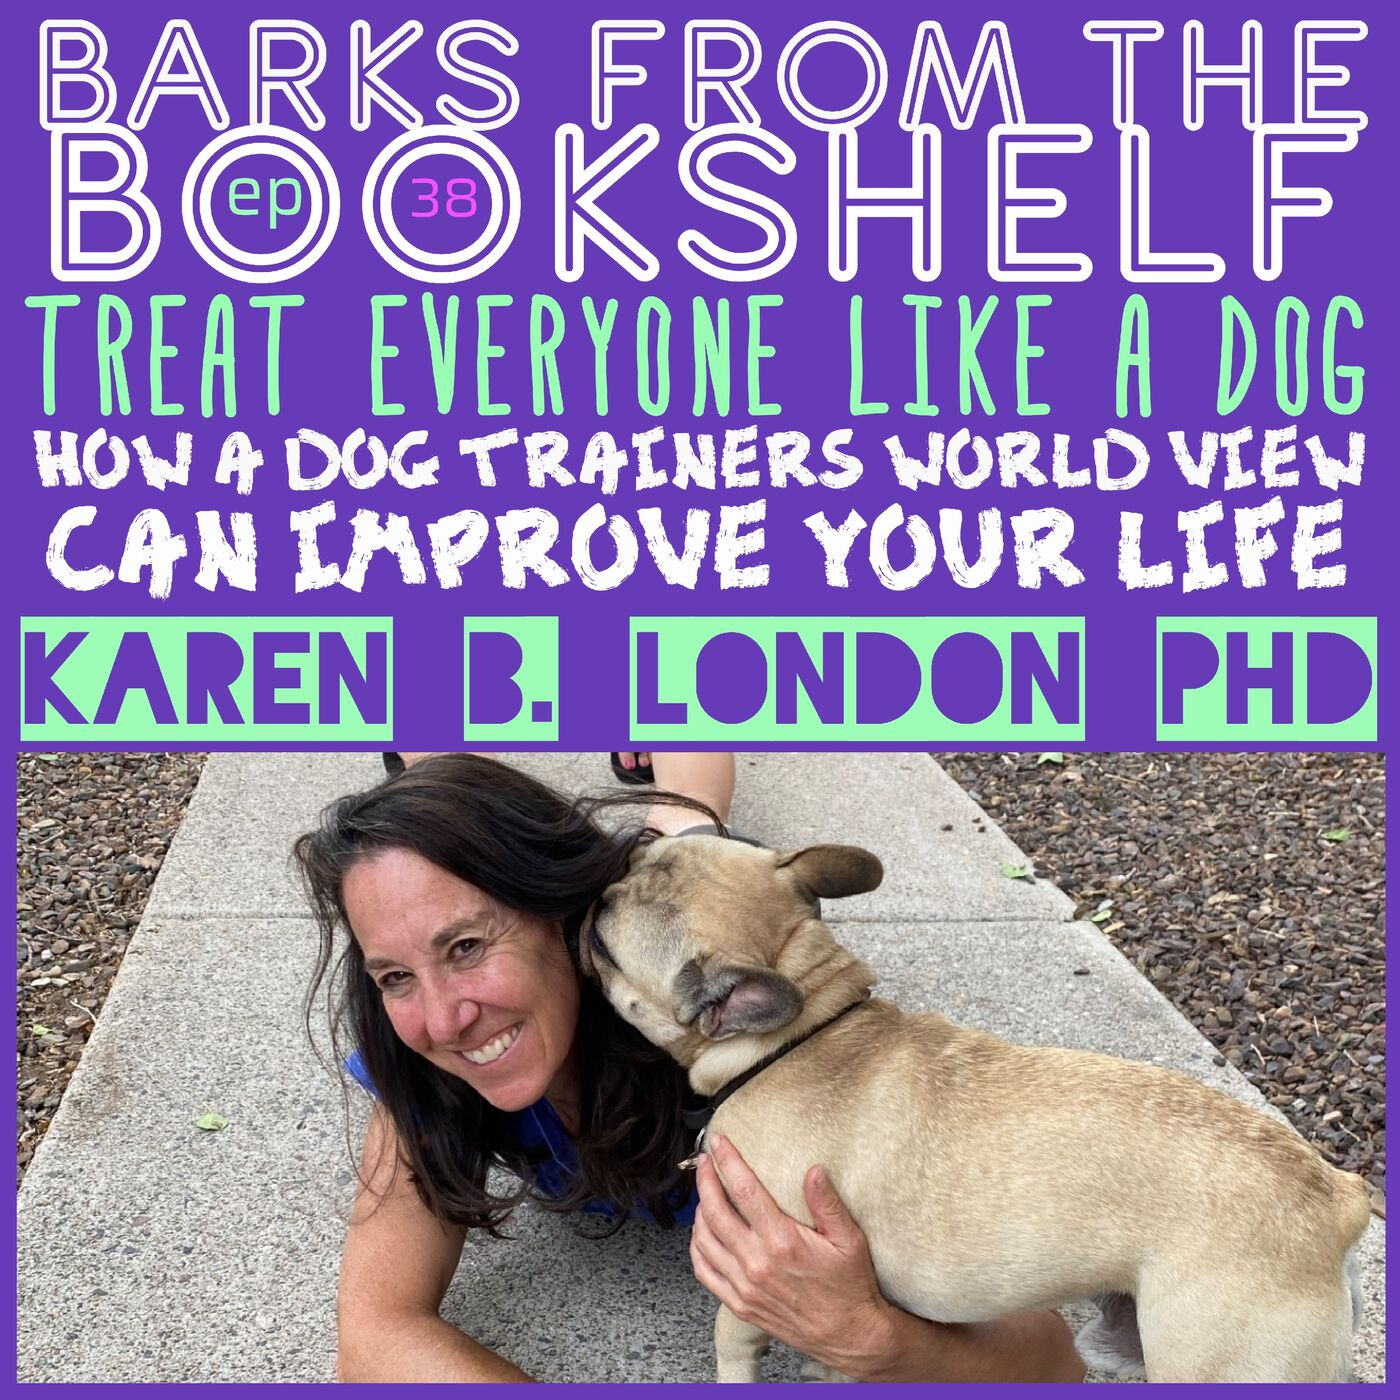 #38 Karen B. London PhD - Treat Everyone Like a Dog: How a Dog Trainers World View Can Improve Your Life